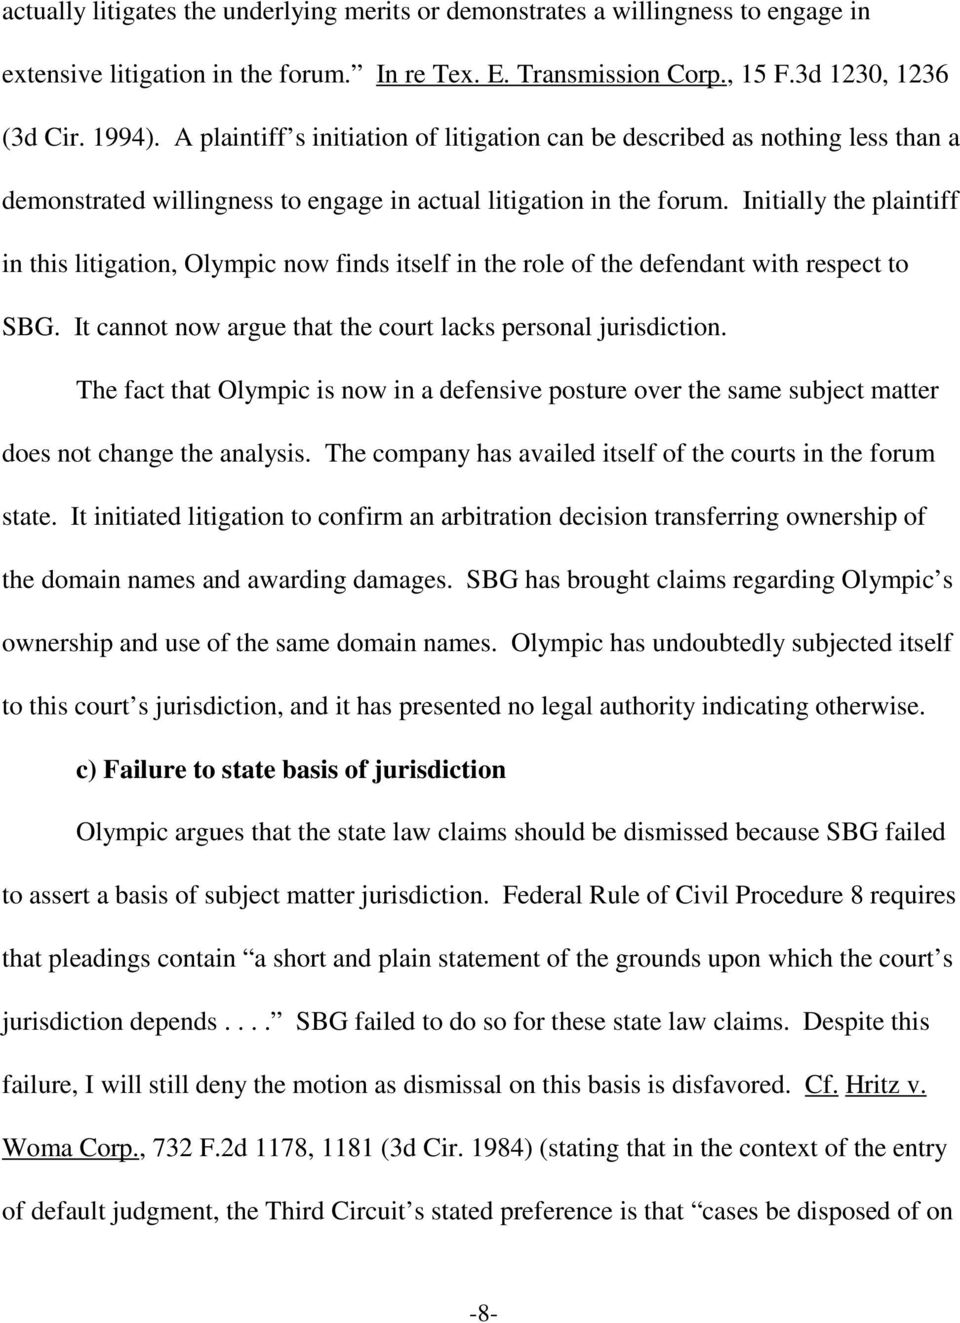 Initially the plaintiff in this litigation, Olympic now finds itself in the role of the defendant with respect to SBG. It cannot now argue that the court lacks personal jurisdiction.